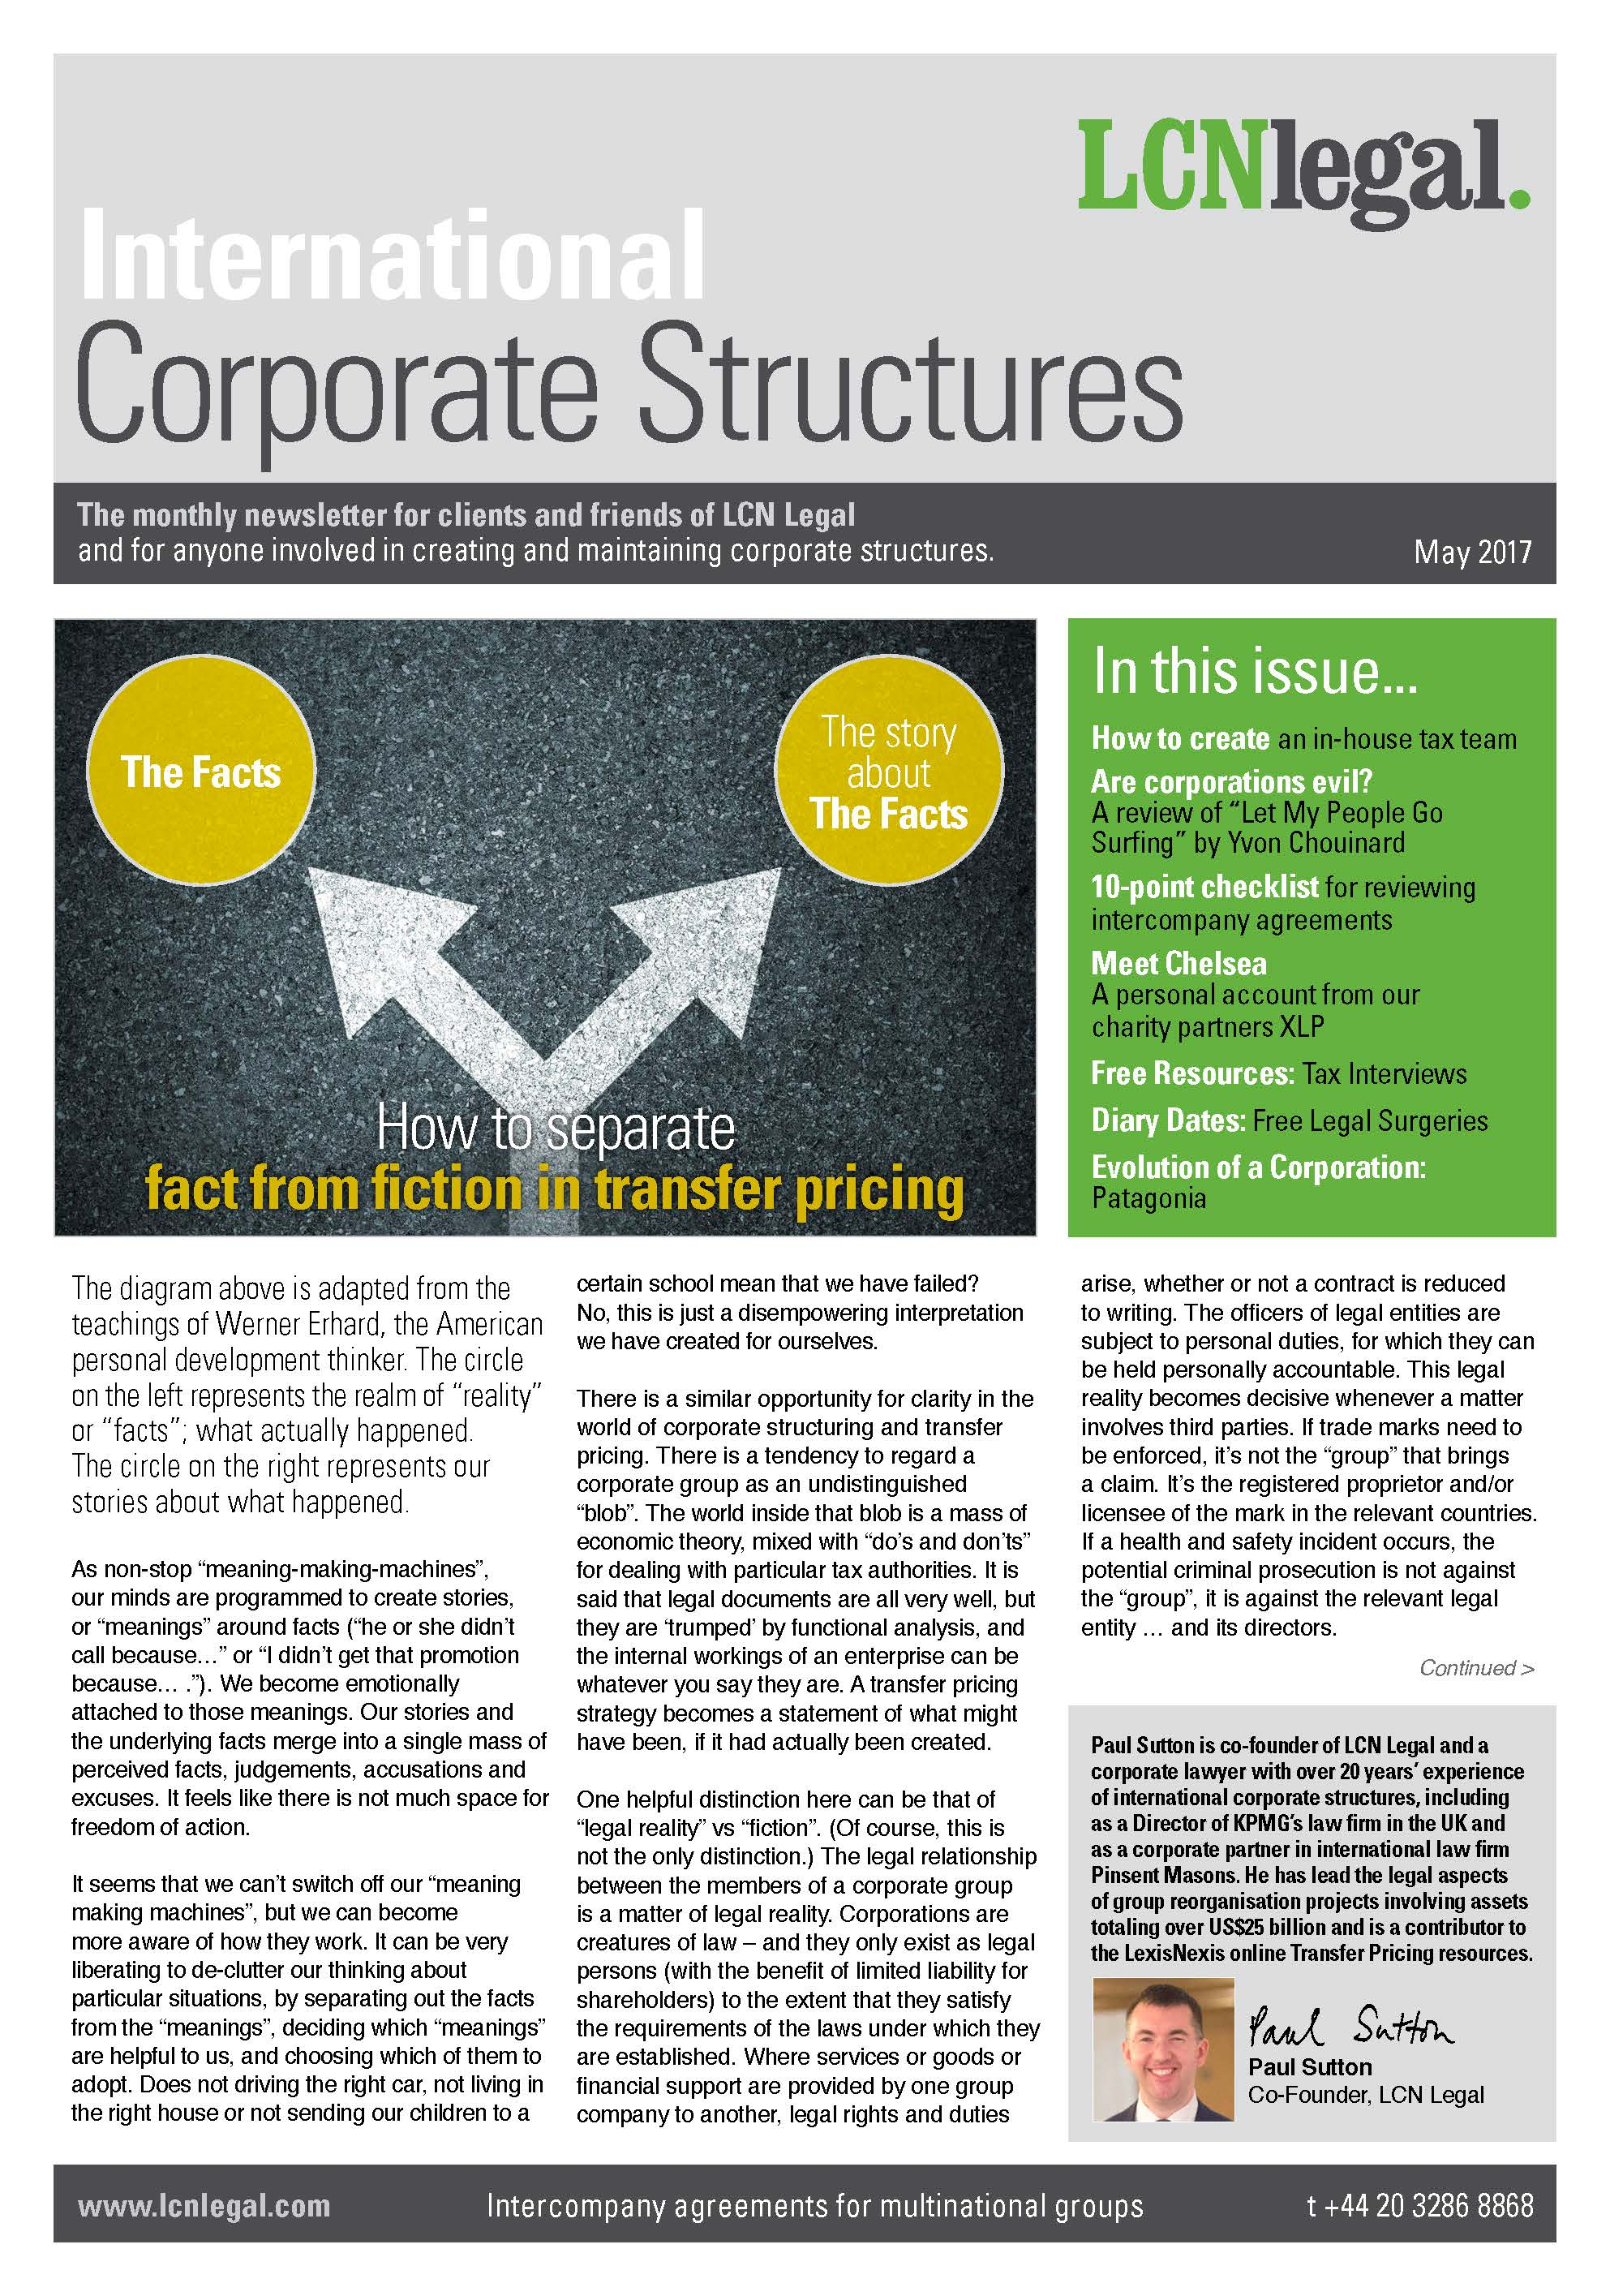 International Corporate Structures Newsletter – May 2017 | LCN Legal